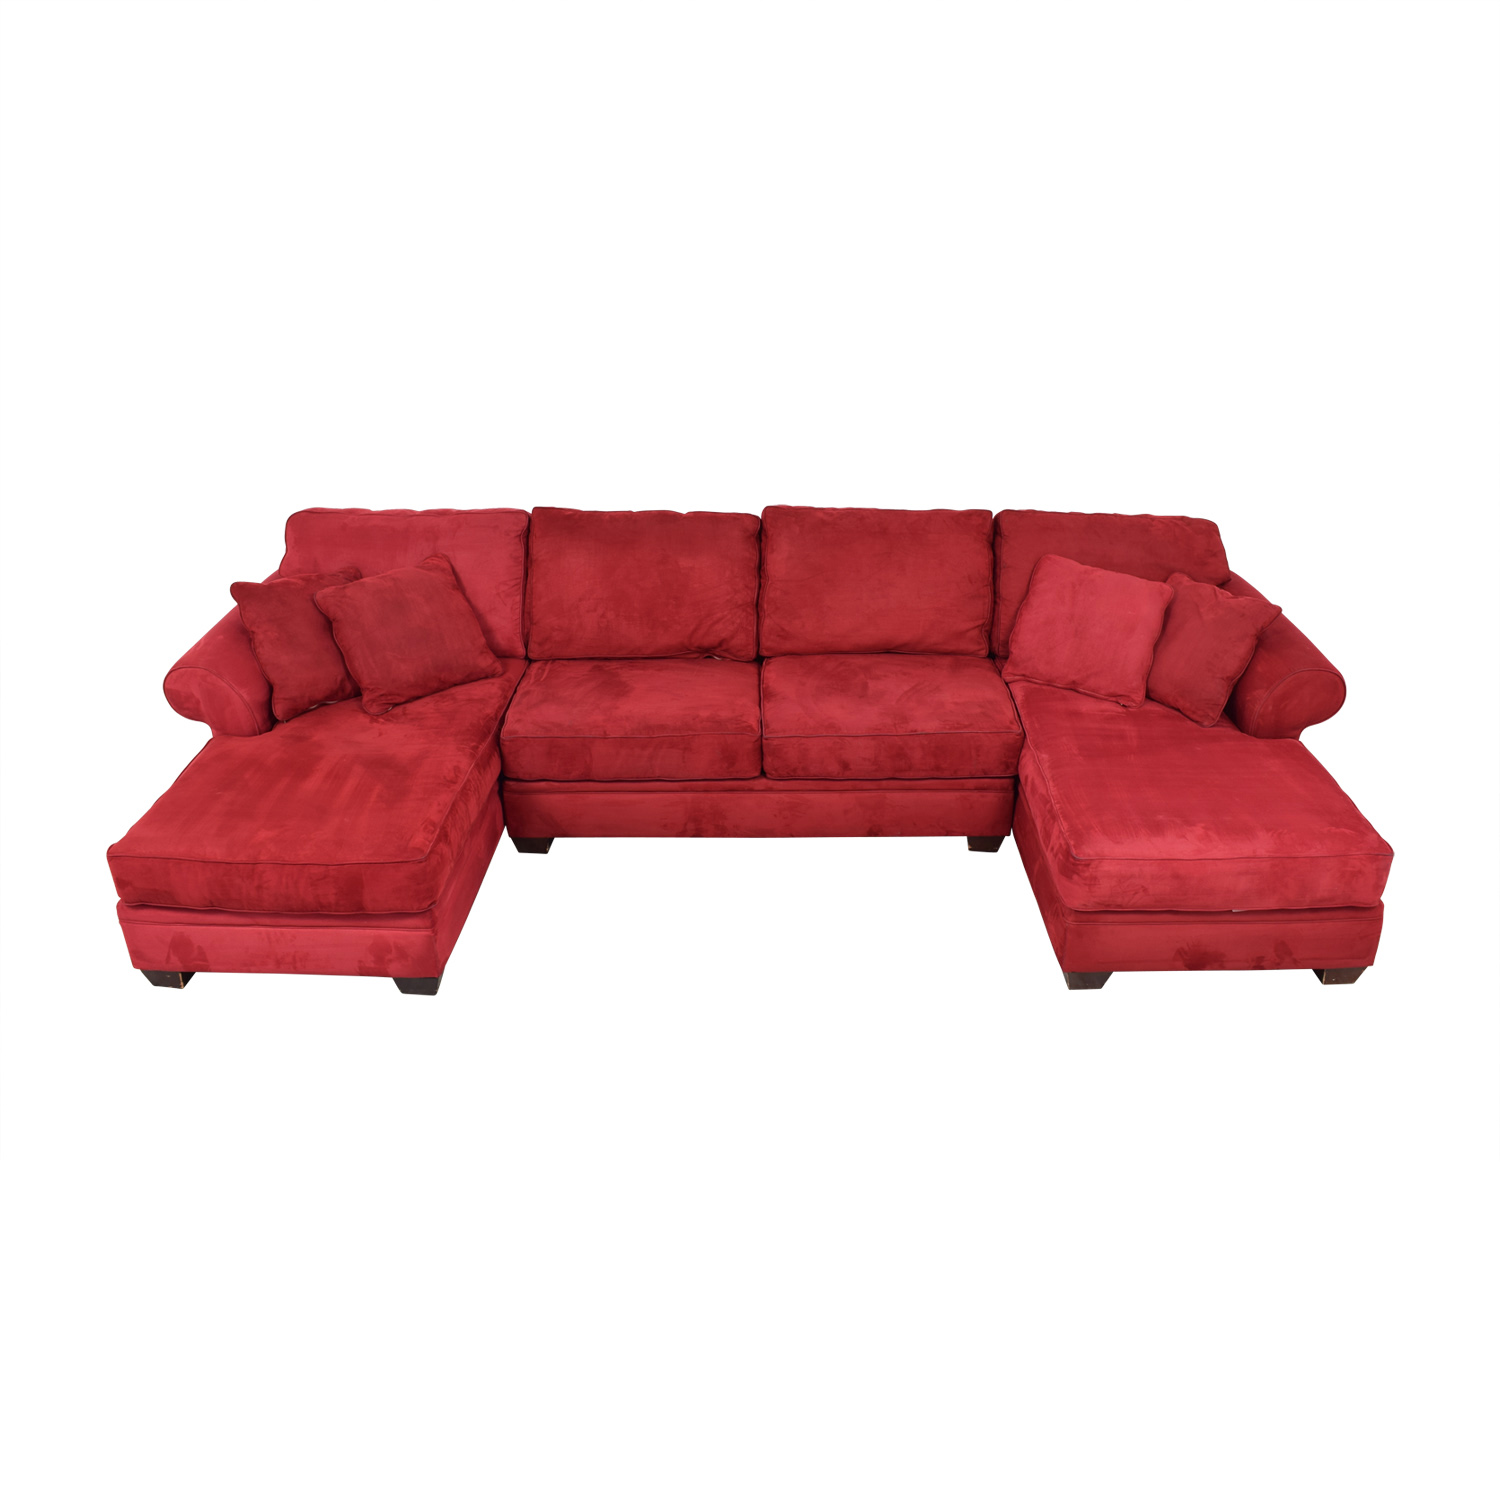 Macy's Macy's U-Shaped Red Double Chaise Sectional Sectionals